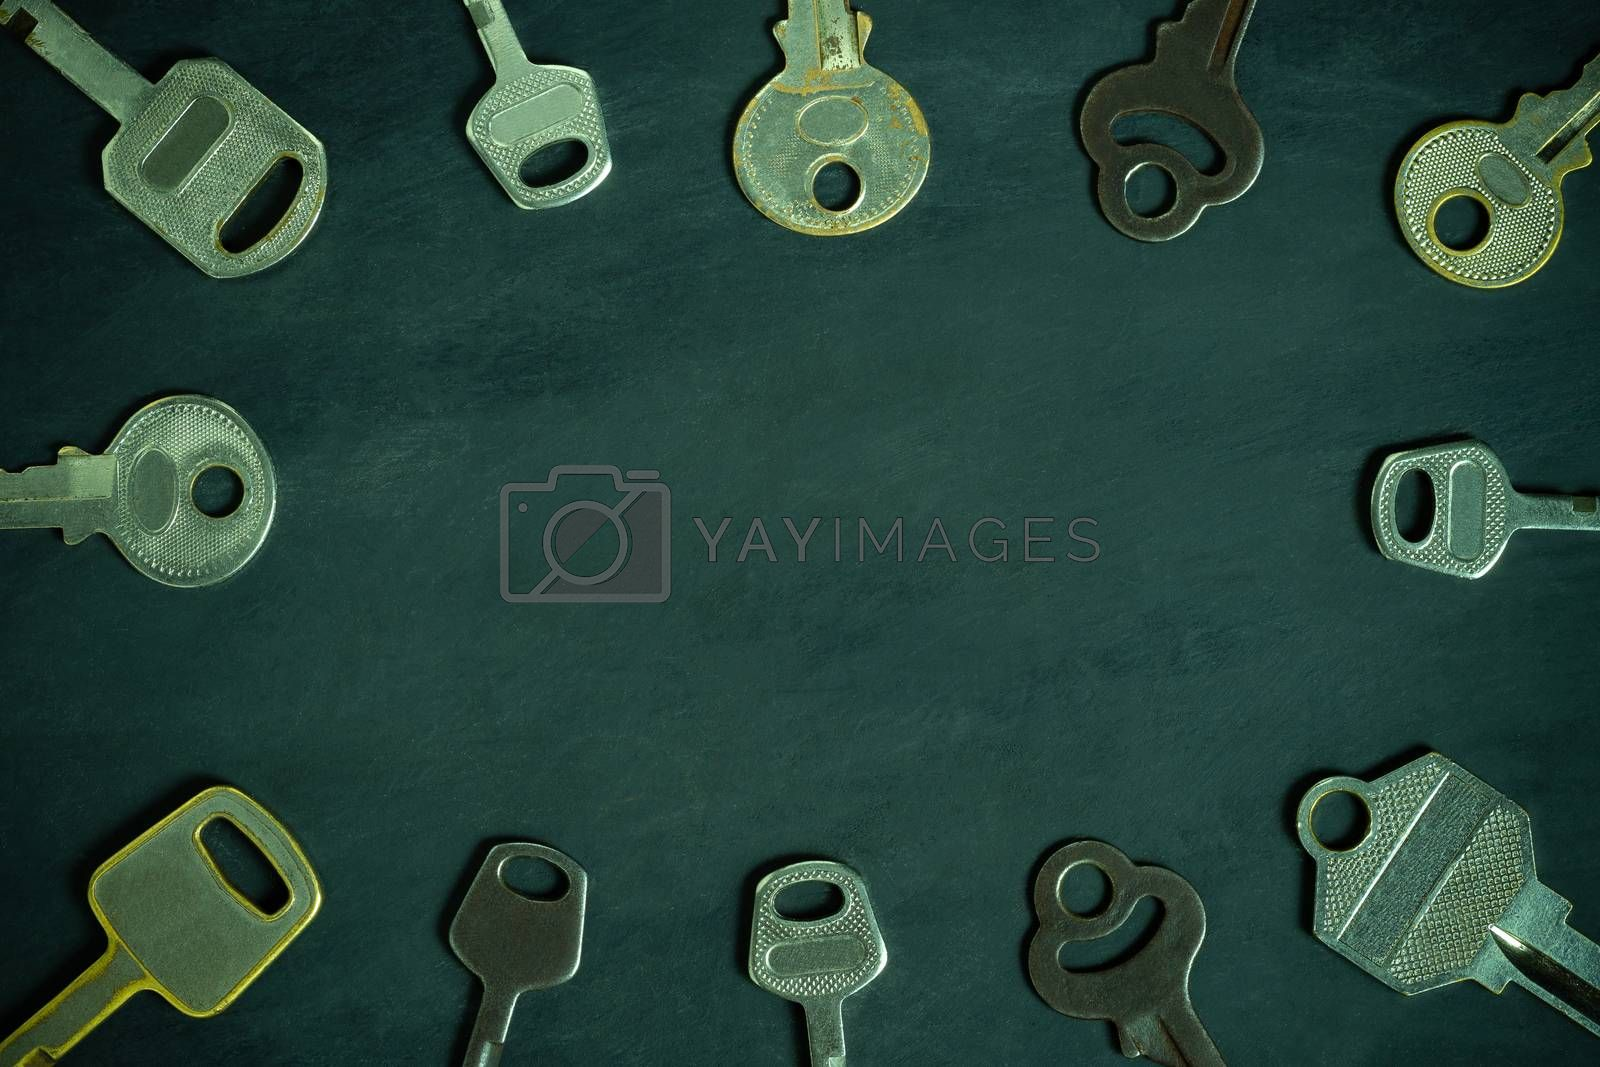 Different variety of vintage keys placed around in circular pattern on wooden background. Copy space in middle. Idea for keys to solving business problems to success. Concept for security or privacy.